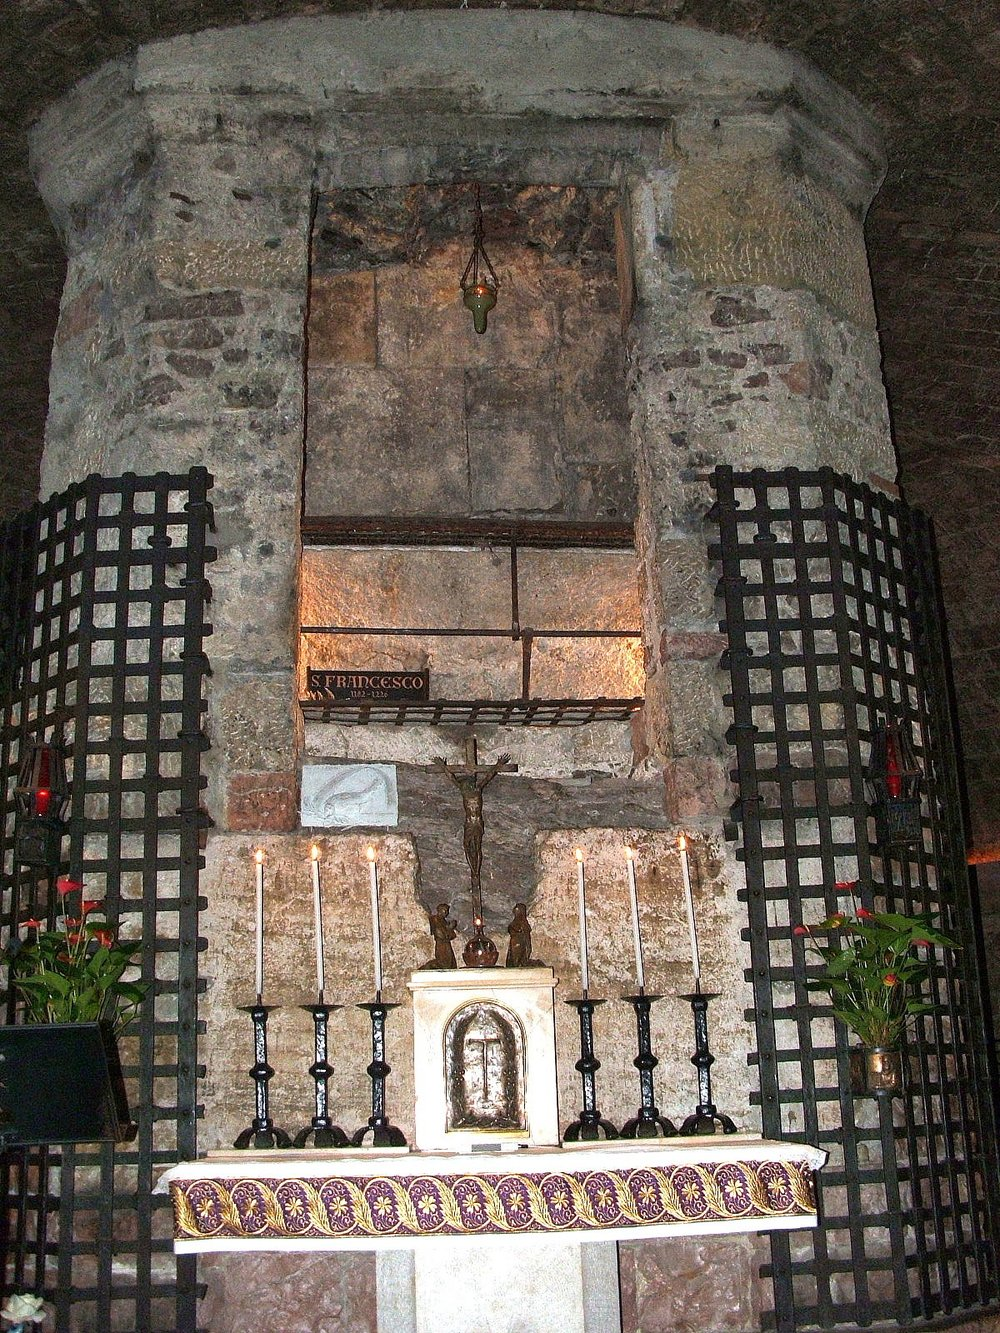 Tomb of St. Francis of Assisi. Basilica of San Francesco d'Assisi, Assisi. [ source ]